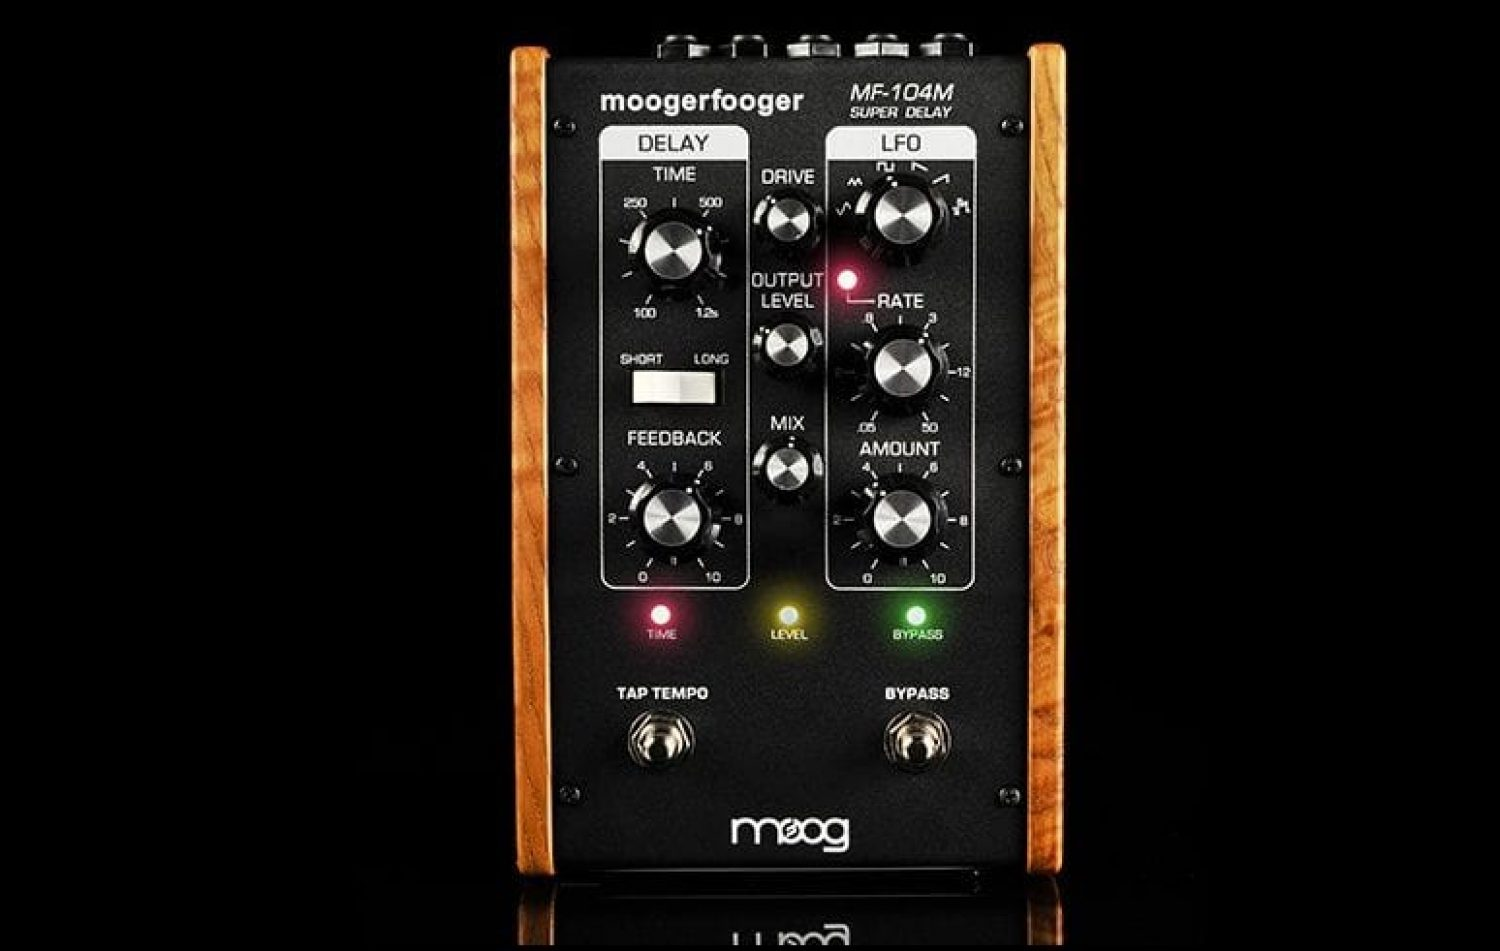 Moog releases limited edition MF-104M Super Delay Moogerfooger